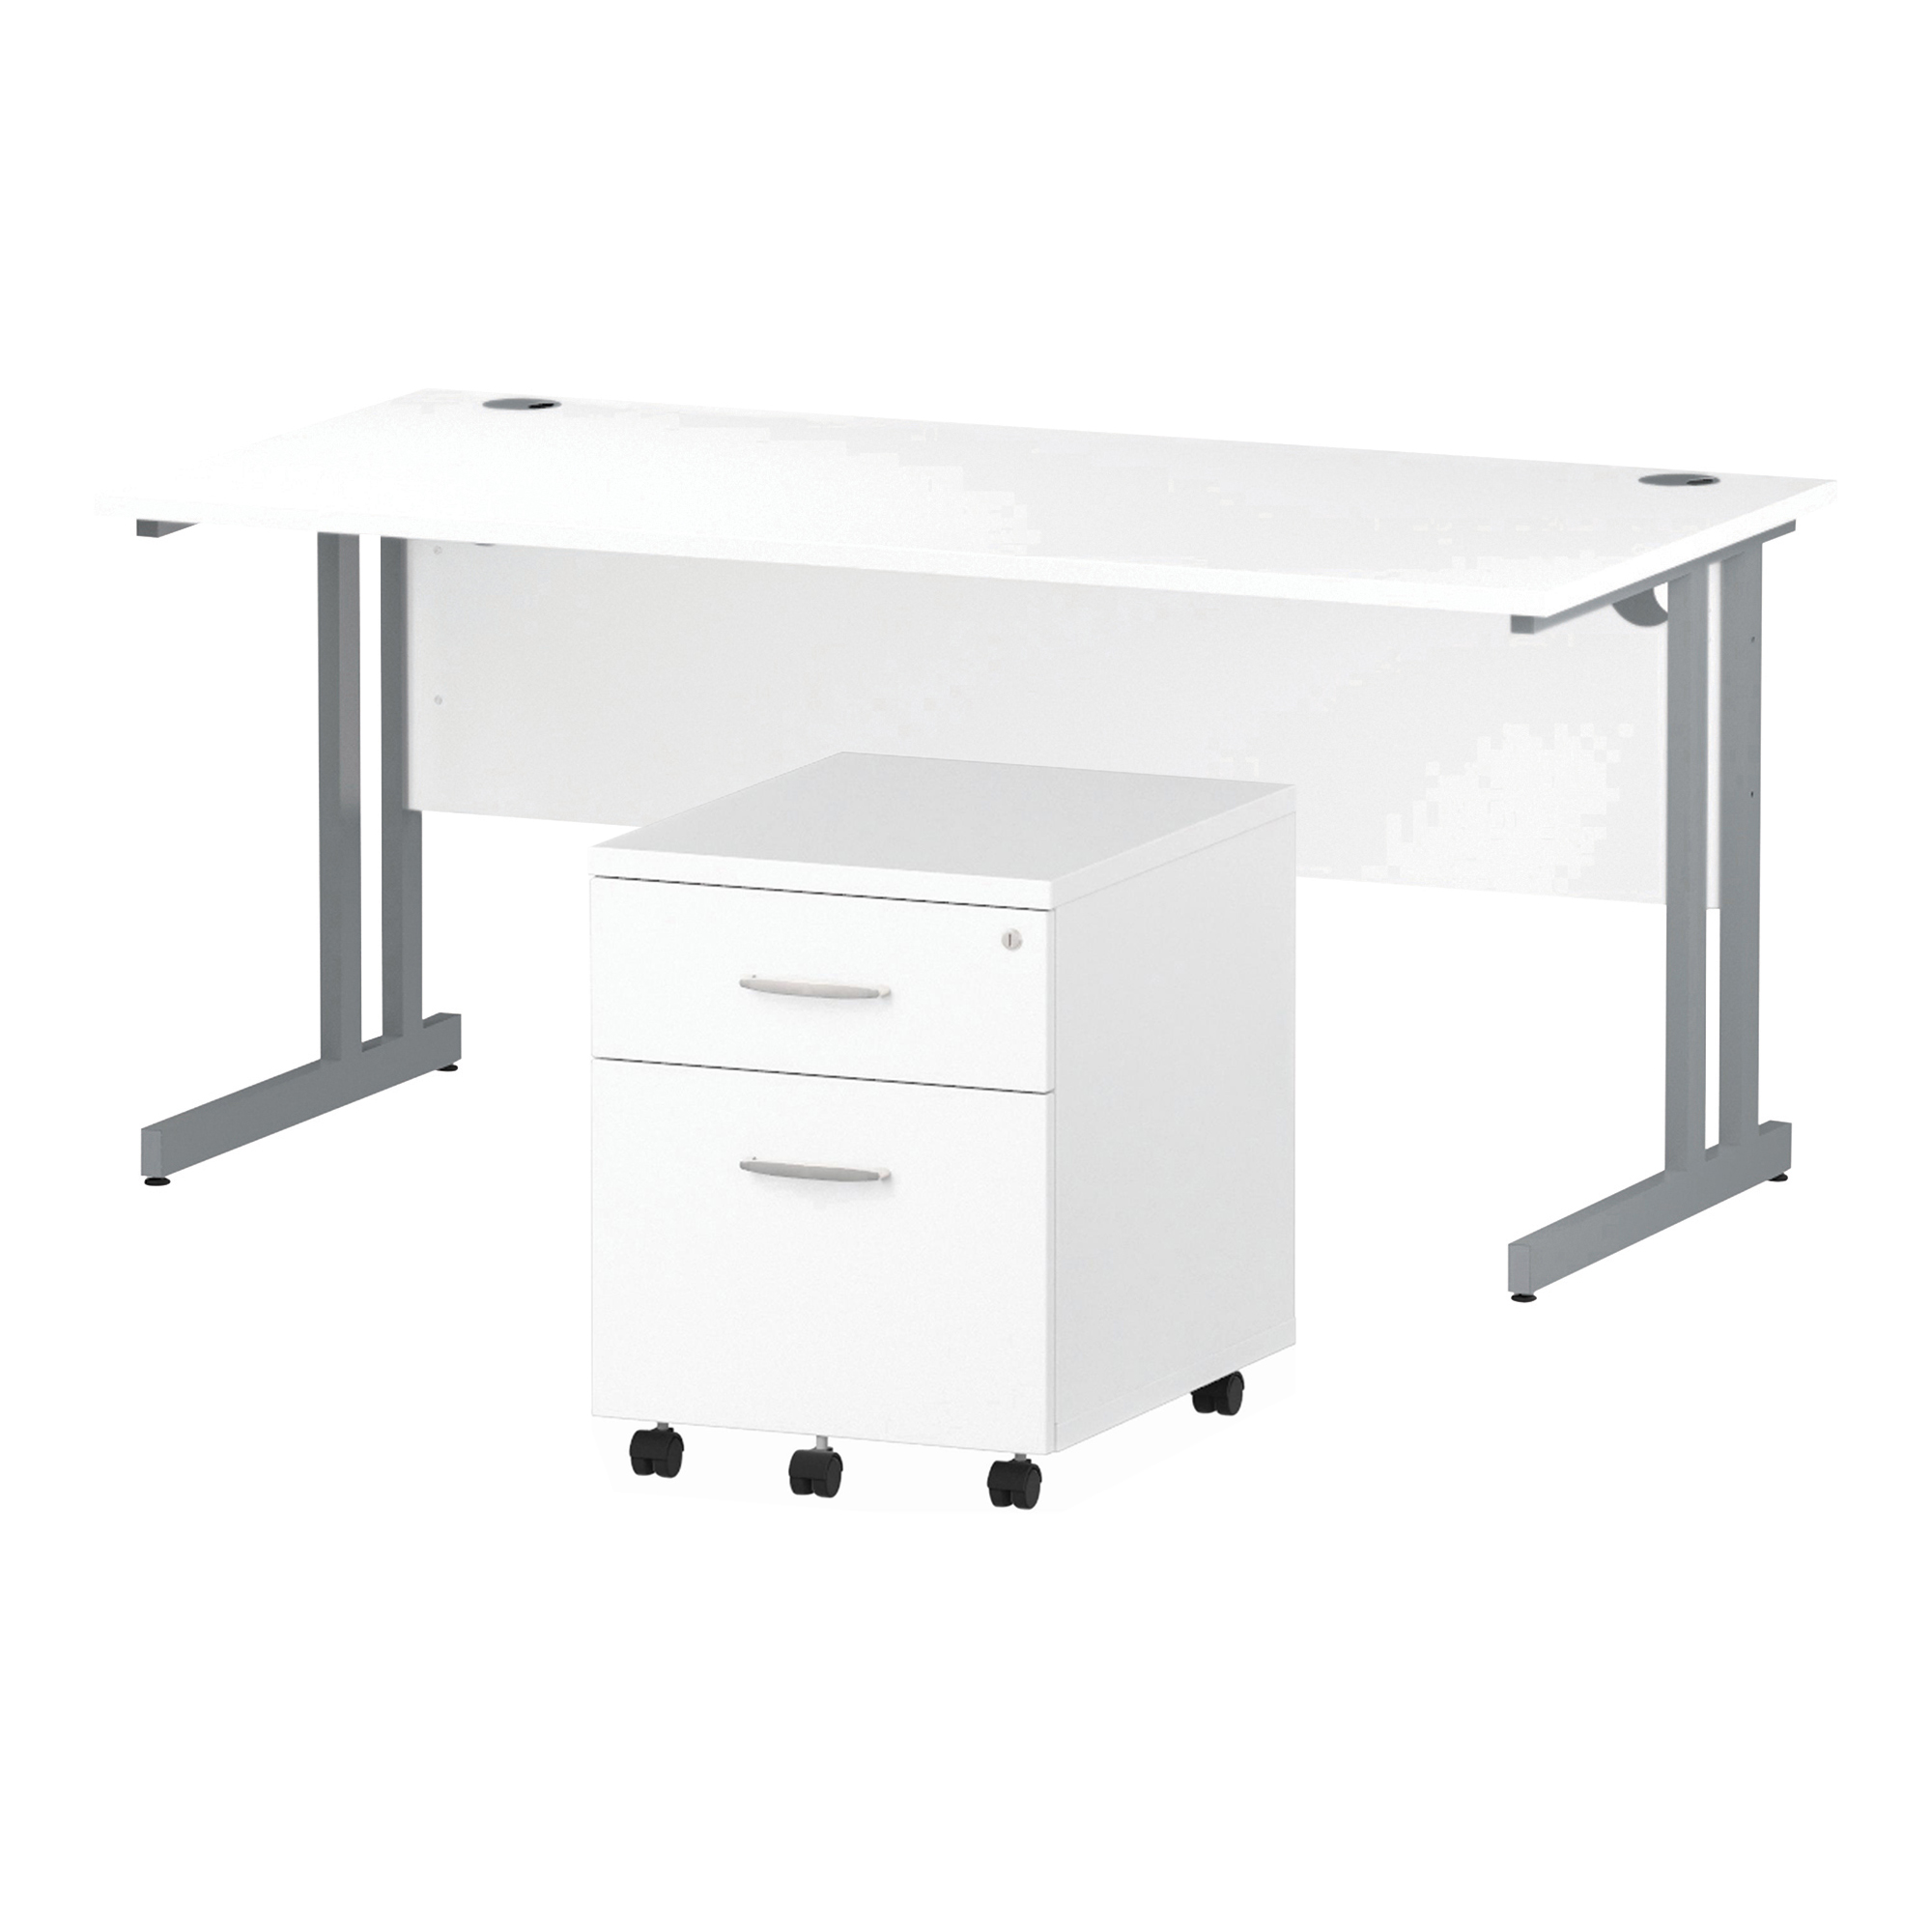 Desks Trexus Cantilever Desk 1600x800 & 2 Drawer Pedestal White Bundle Offer Feb-Apr 2020